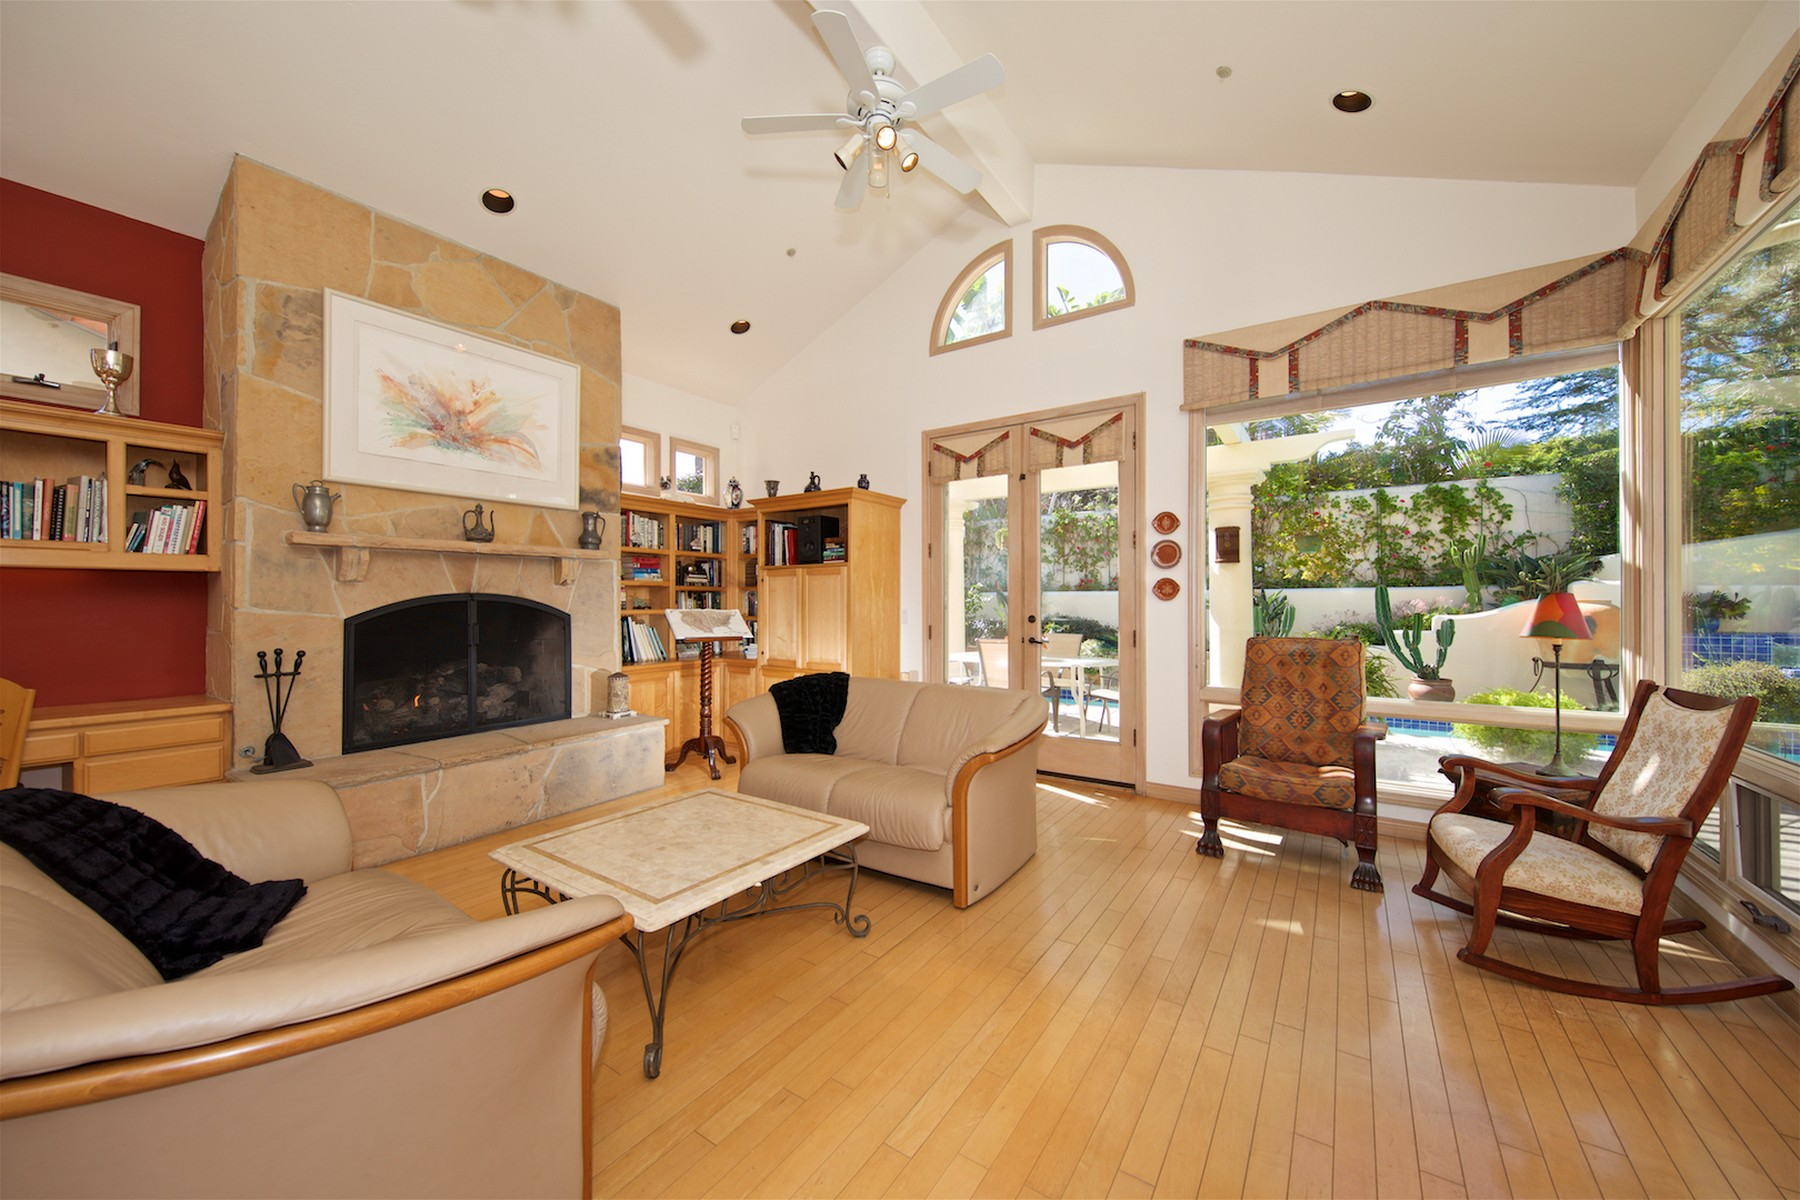 Additional photo for property listing at 664 Hymettus Avenue  Encinitas, California 92024 United States